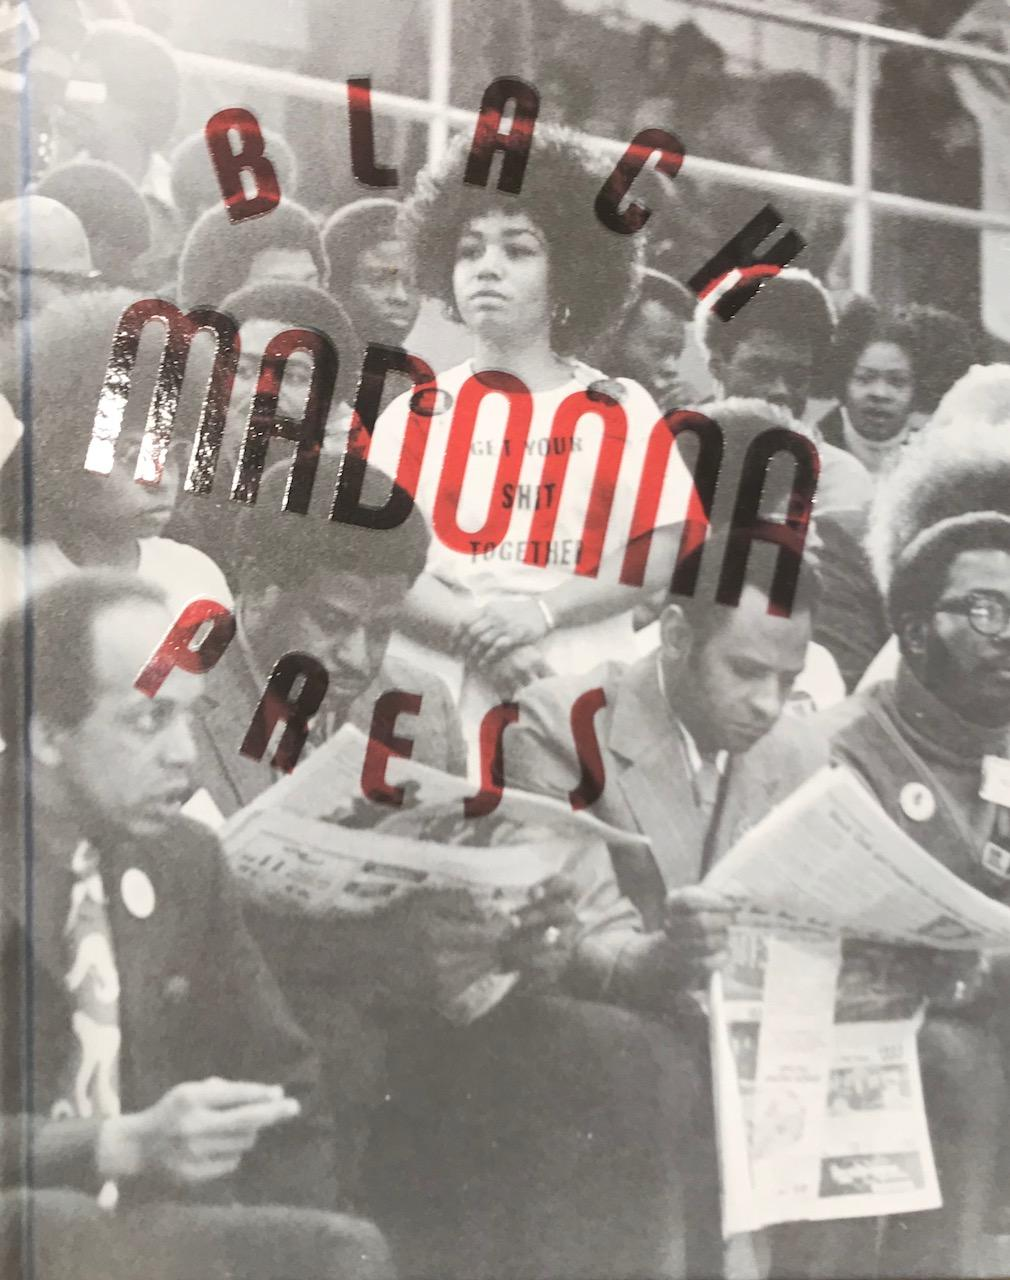 Theaster Gates: Black Madonna Press